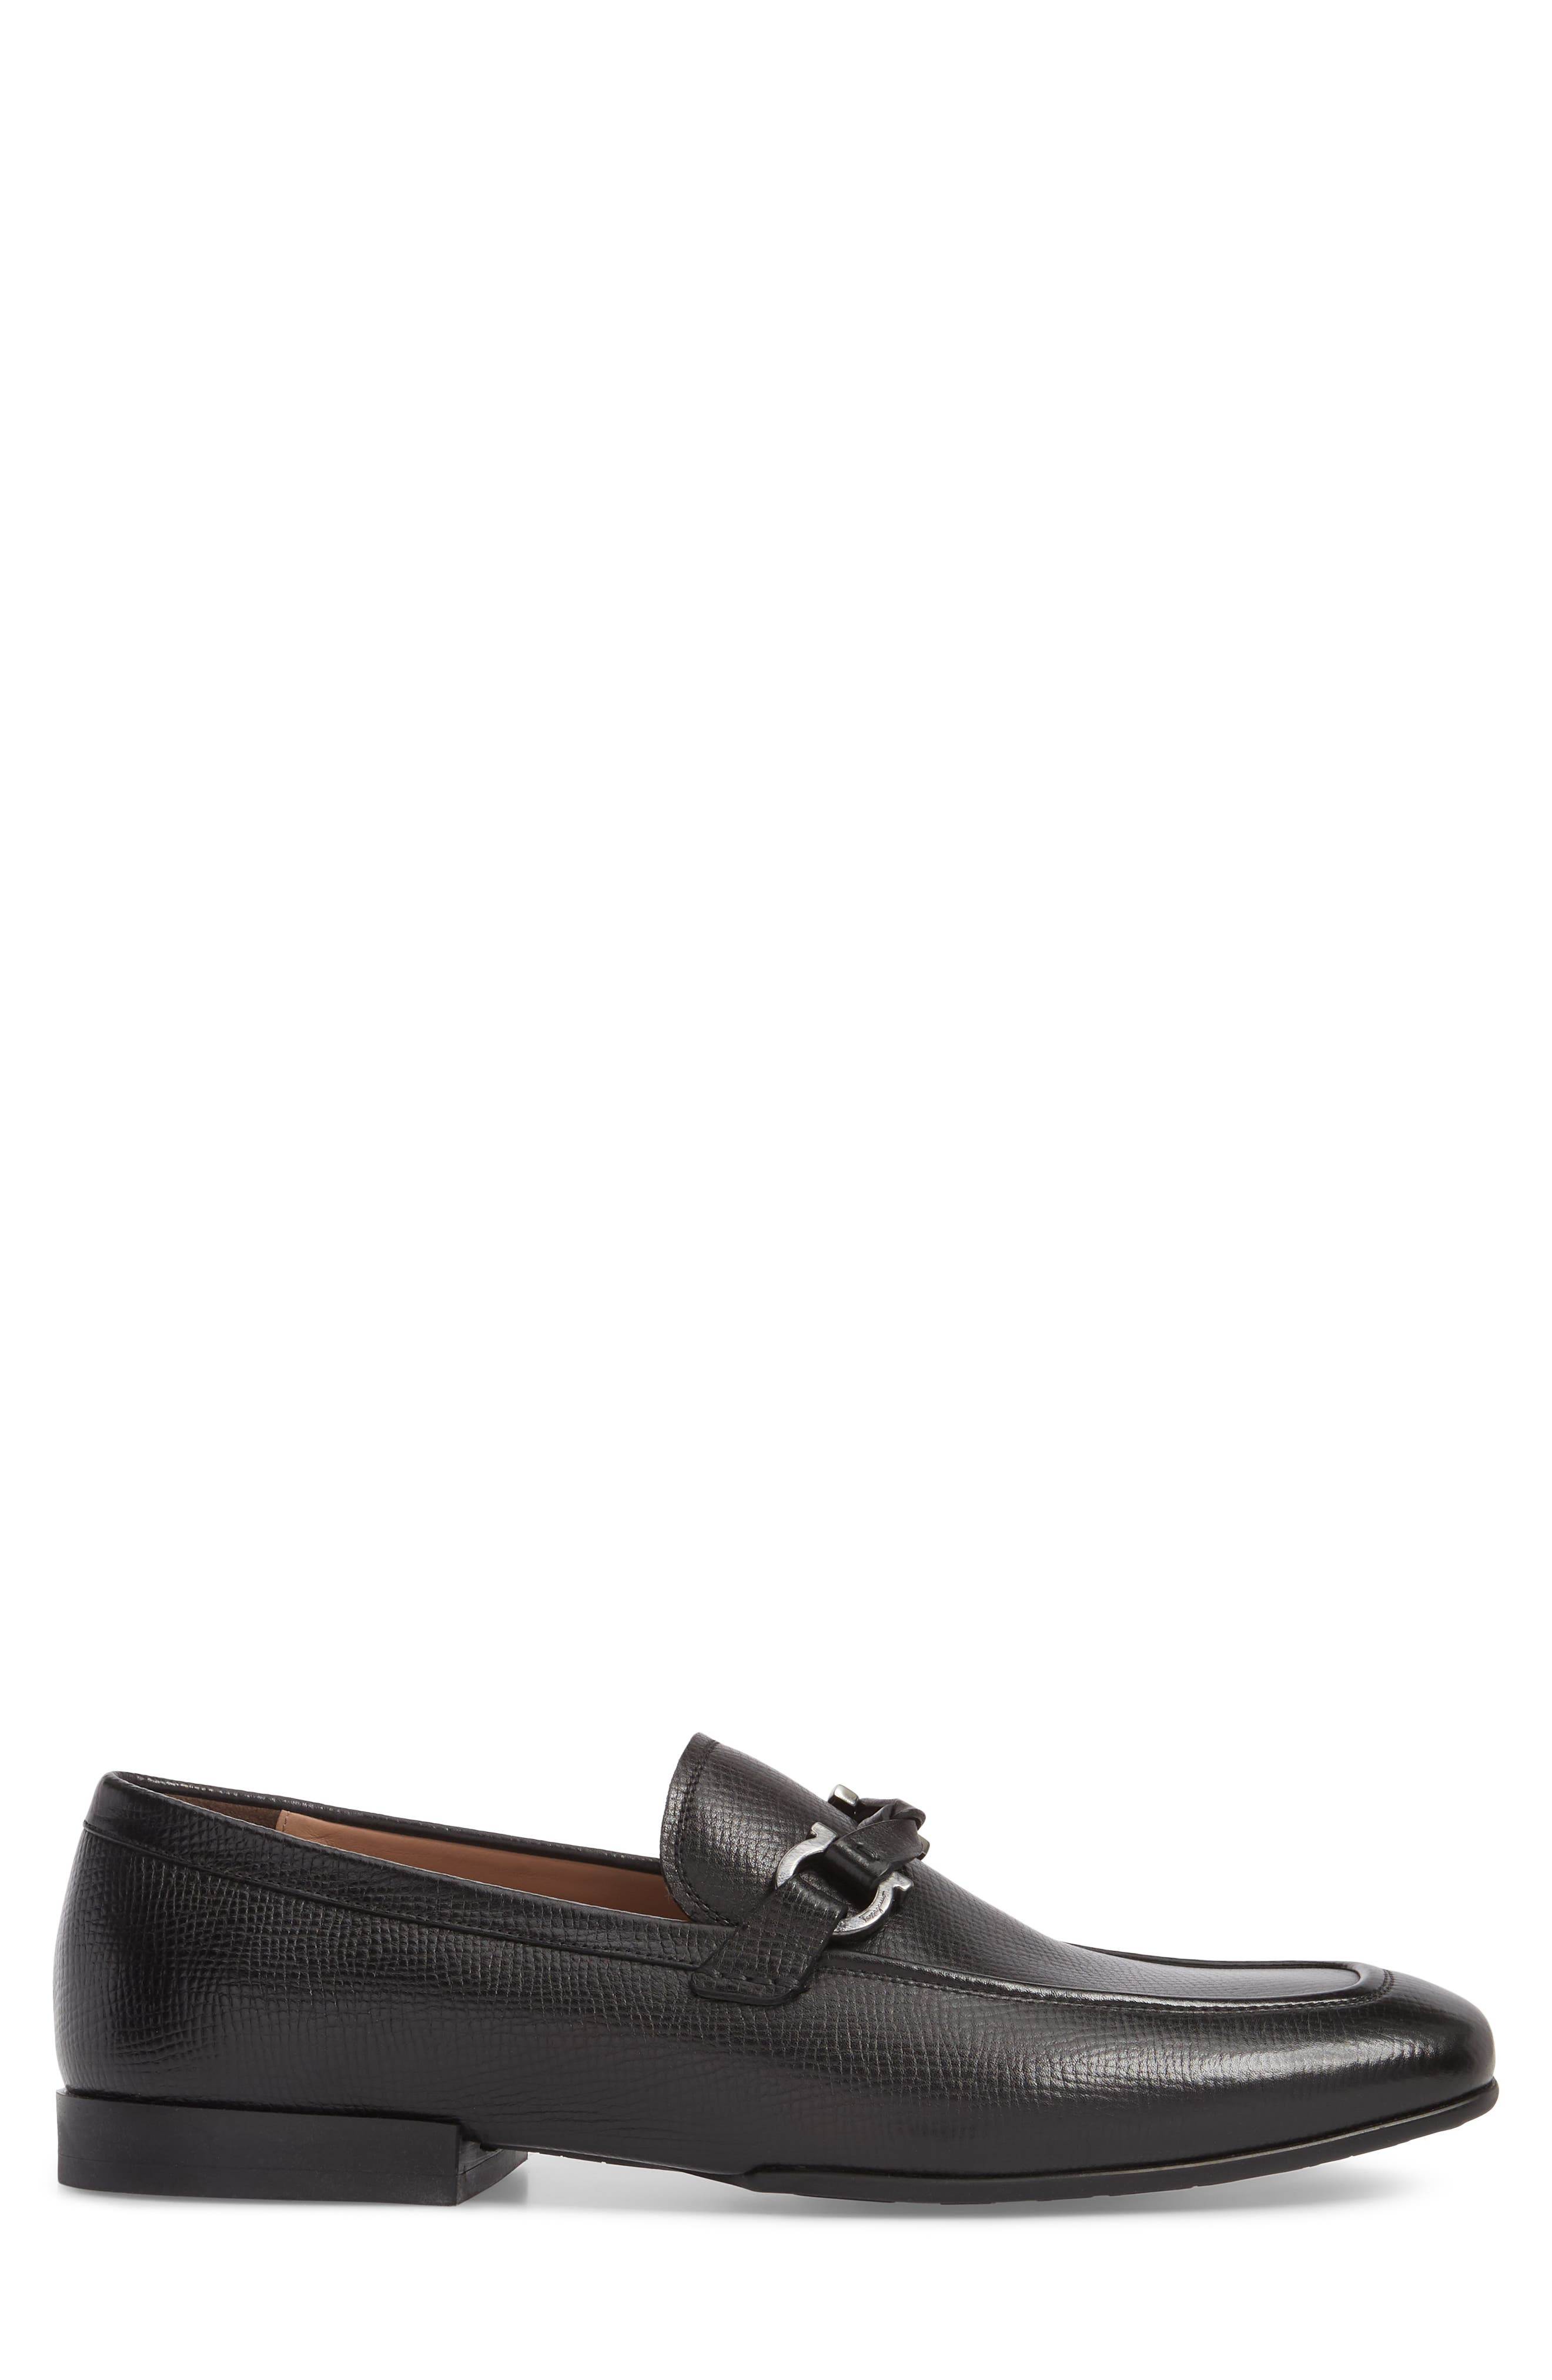 Barry Looped Bit Loafer,                             Alternate thumbnail 3, color,                             NERO LEATHER